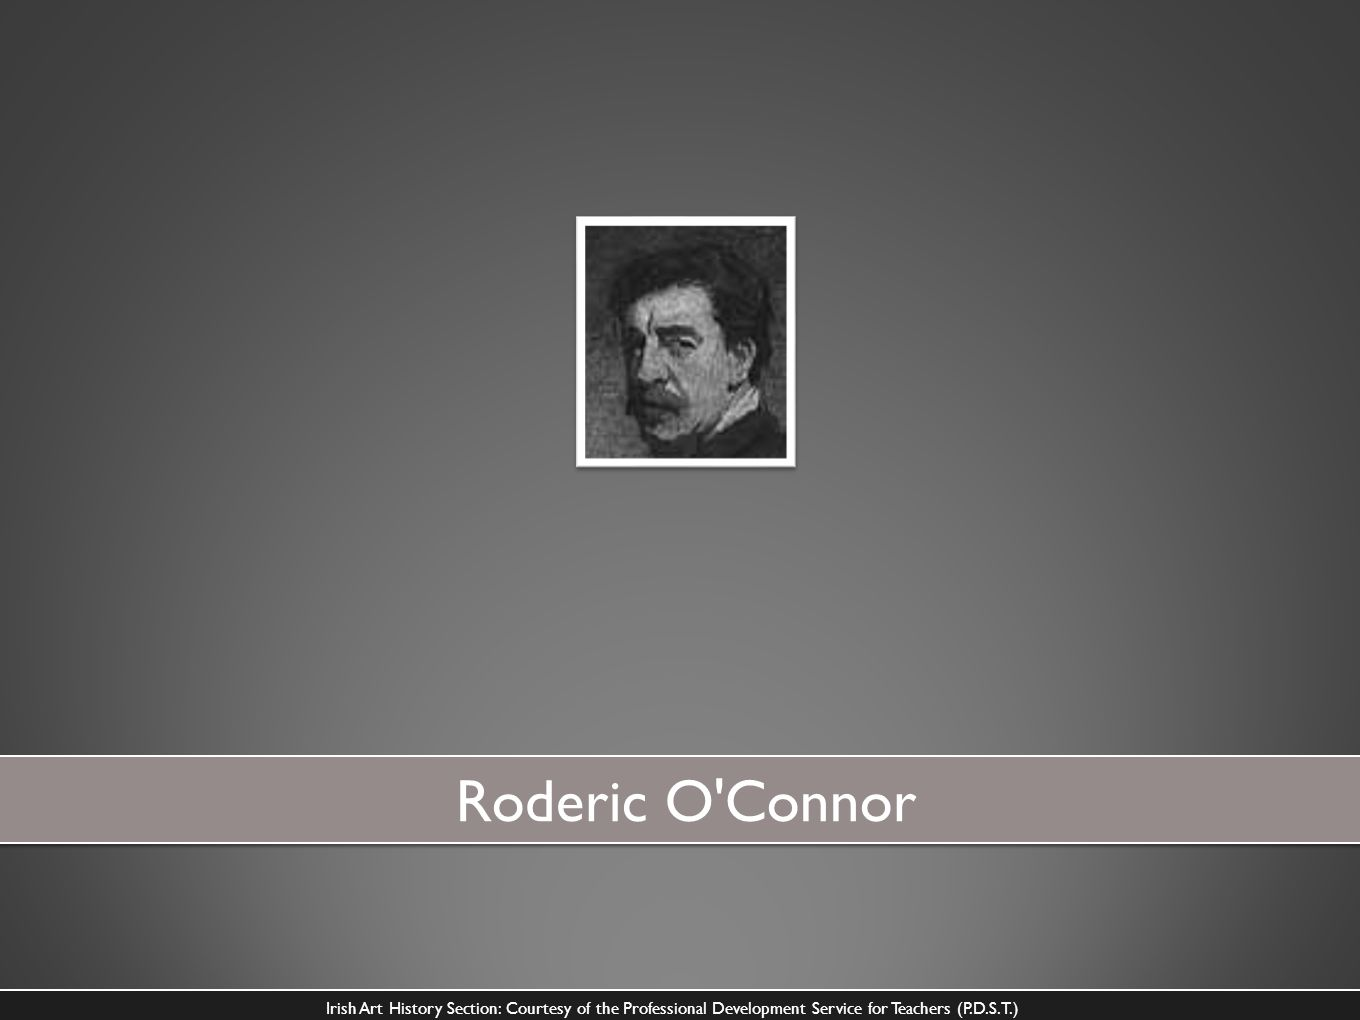 Roderic O Connor Irish Art History Section: Courtesy of the Professional Development Service for Teachers (P.D.S.T.)